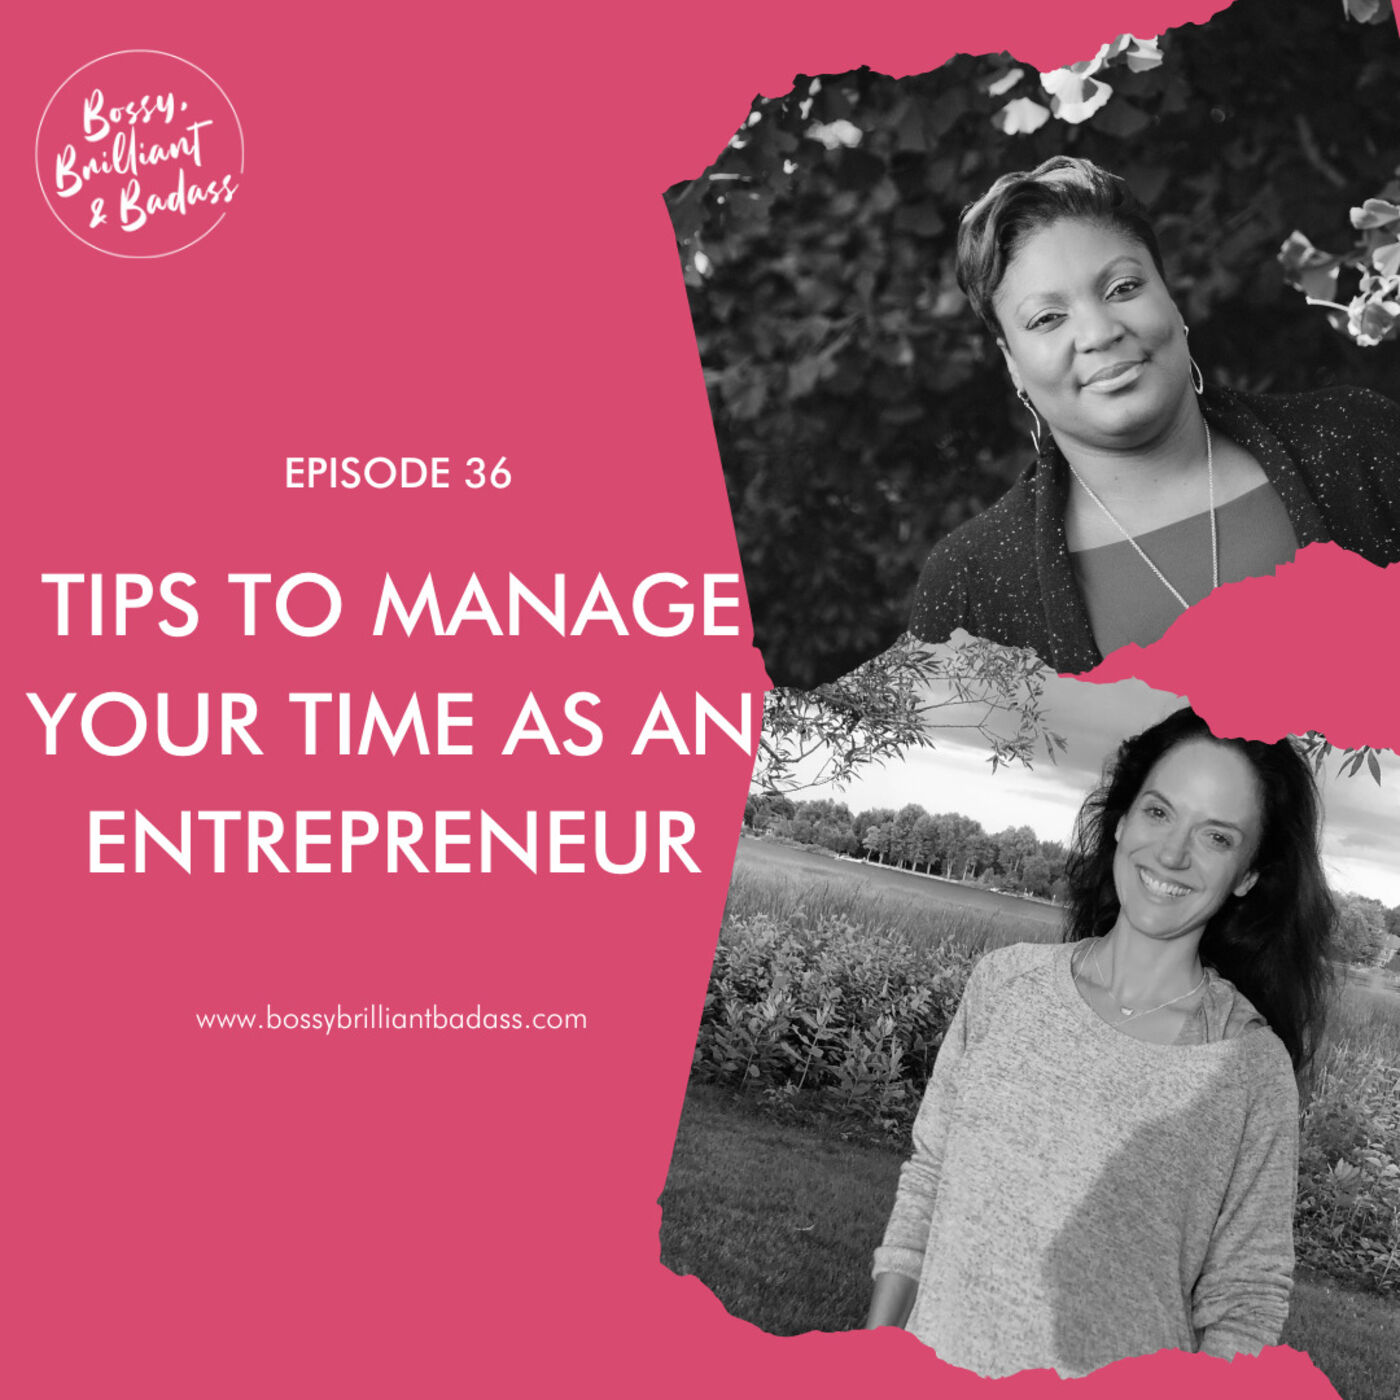 Tips for Managing Your Time as an Entrepreneur